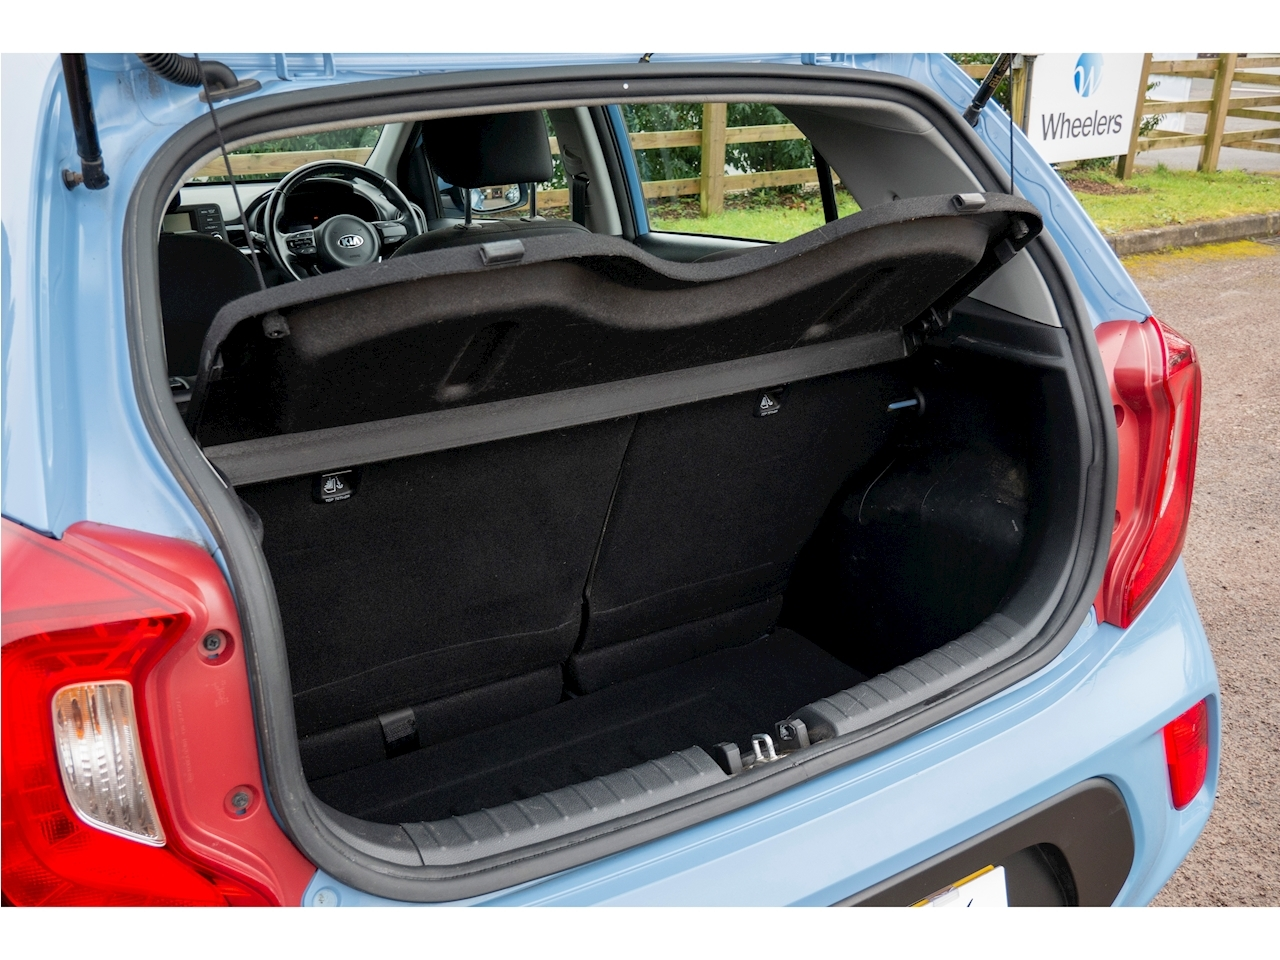 Kia Picanto 2 Hatchback 1.0 Manual Petrol